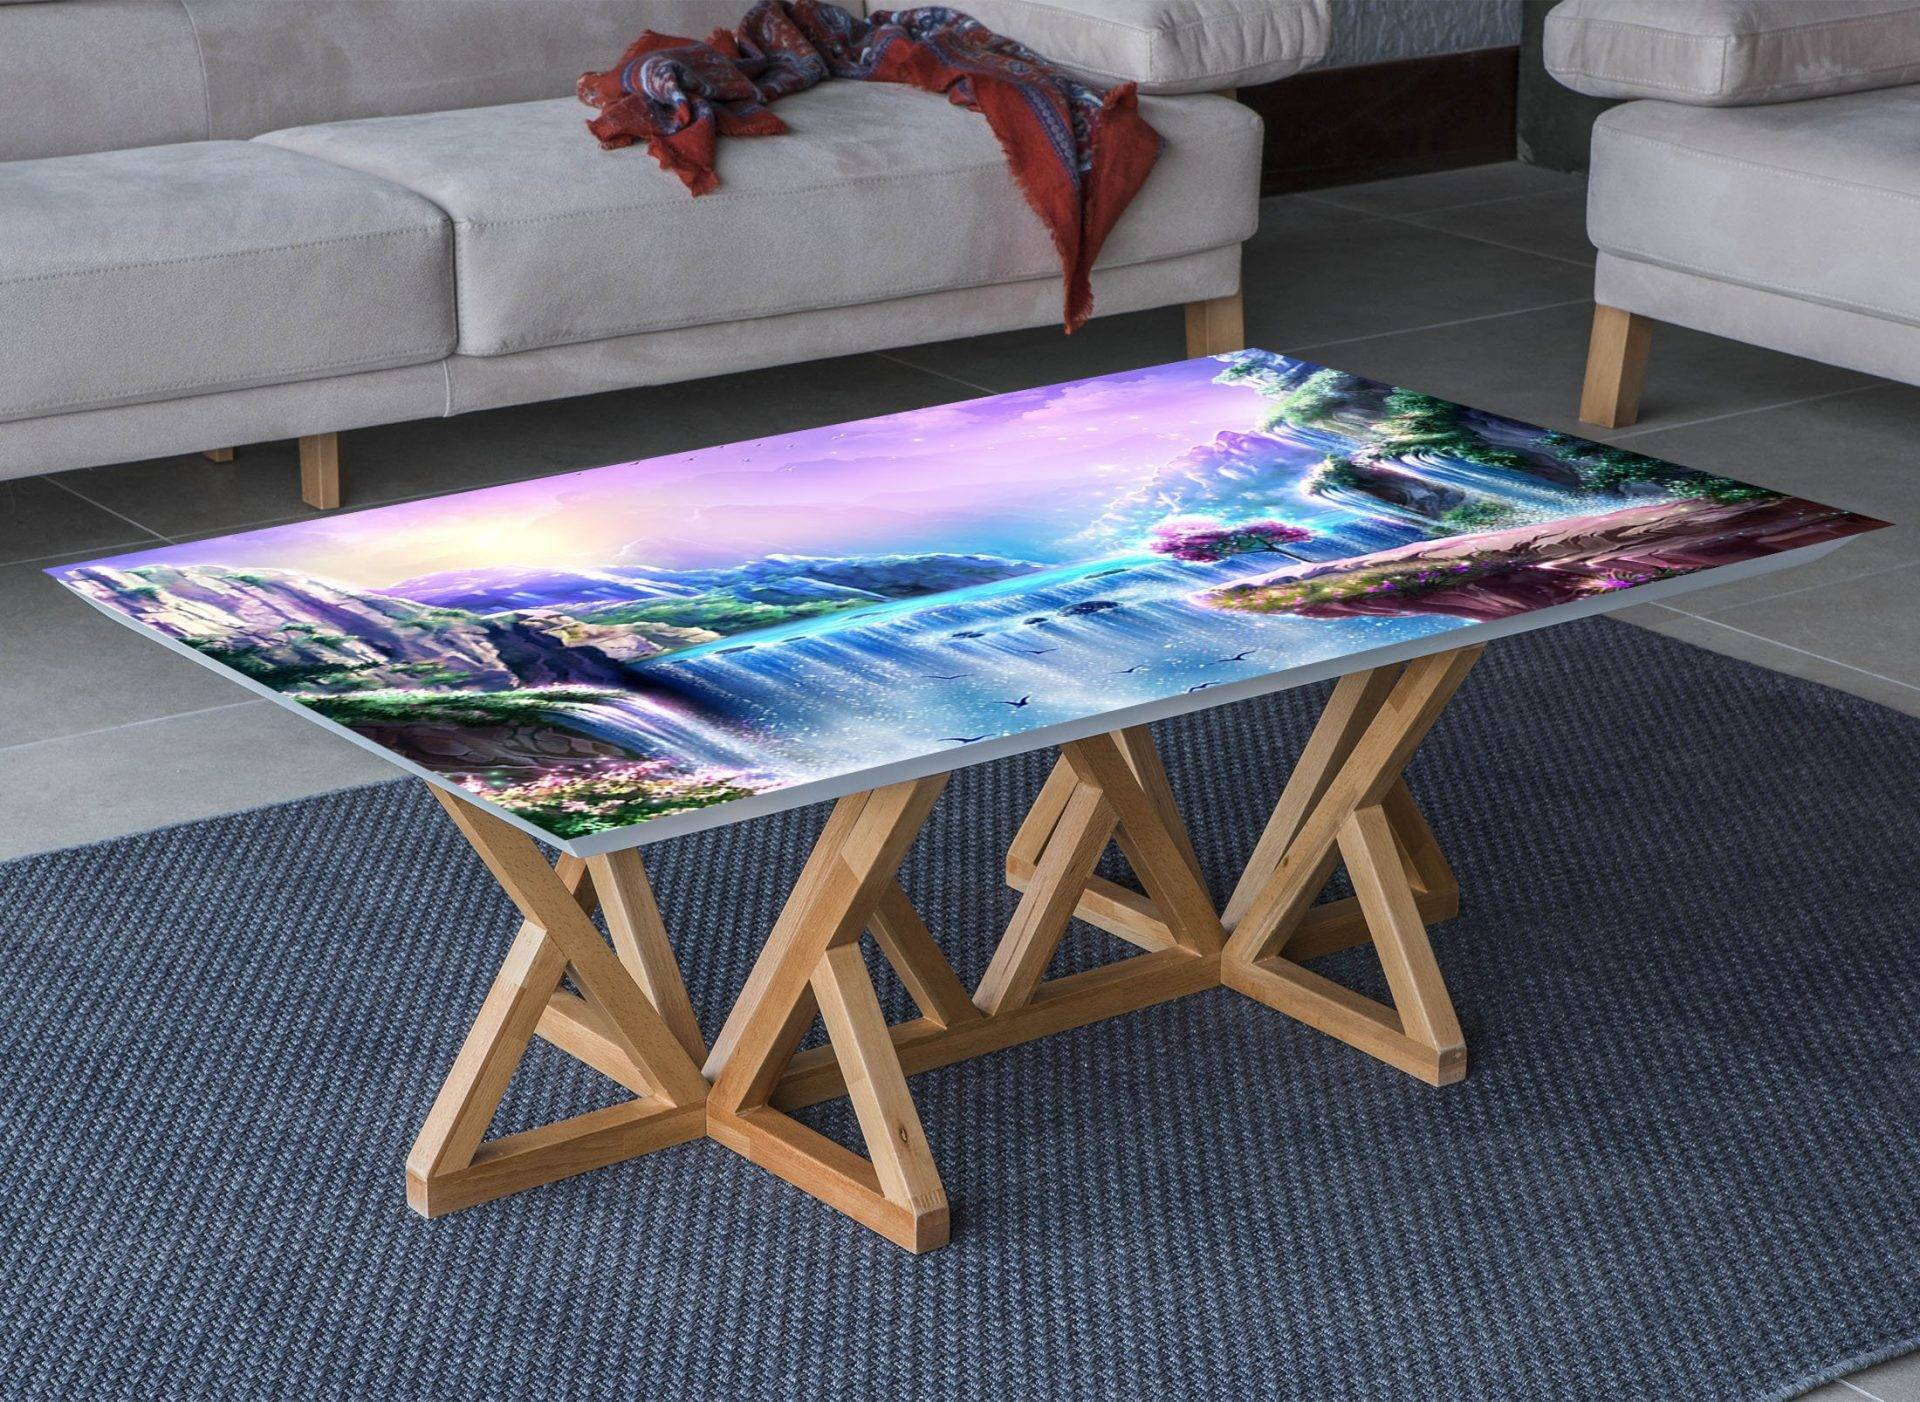 Magic Waterfall Mountain Laminated Vinyl Cover Self-Adhesive for Desk and Tables